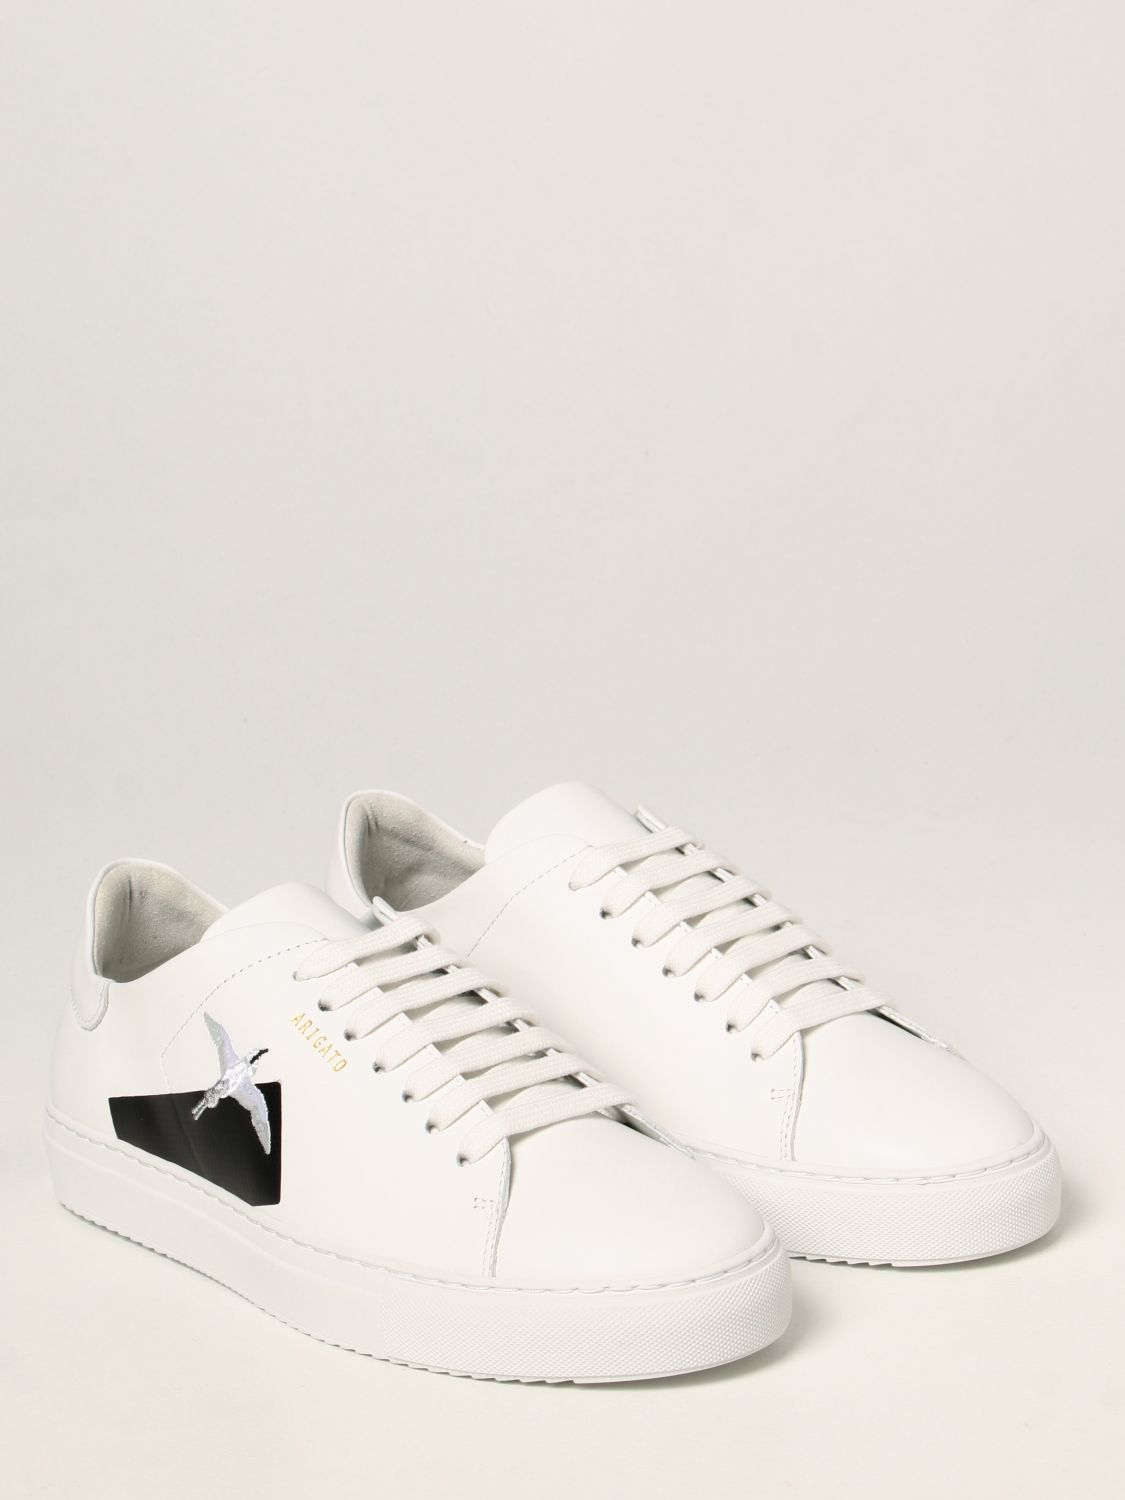 Trainers Axel Arigato: Axel Arigato sneakers in leather with logo white 2